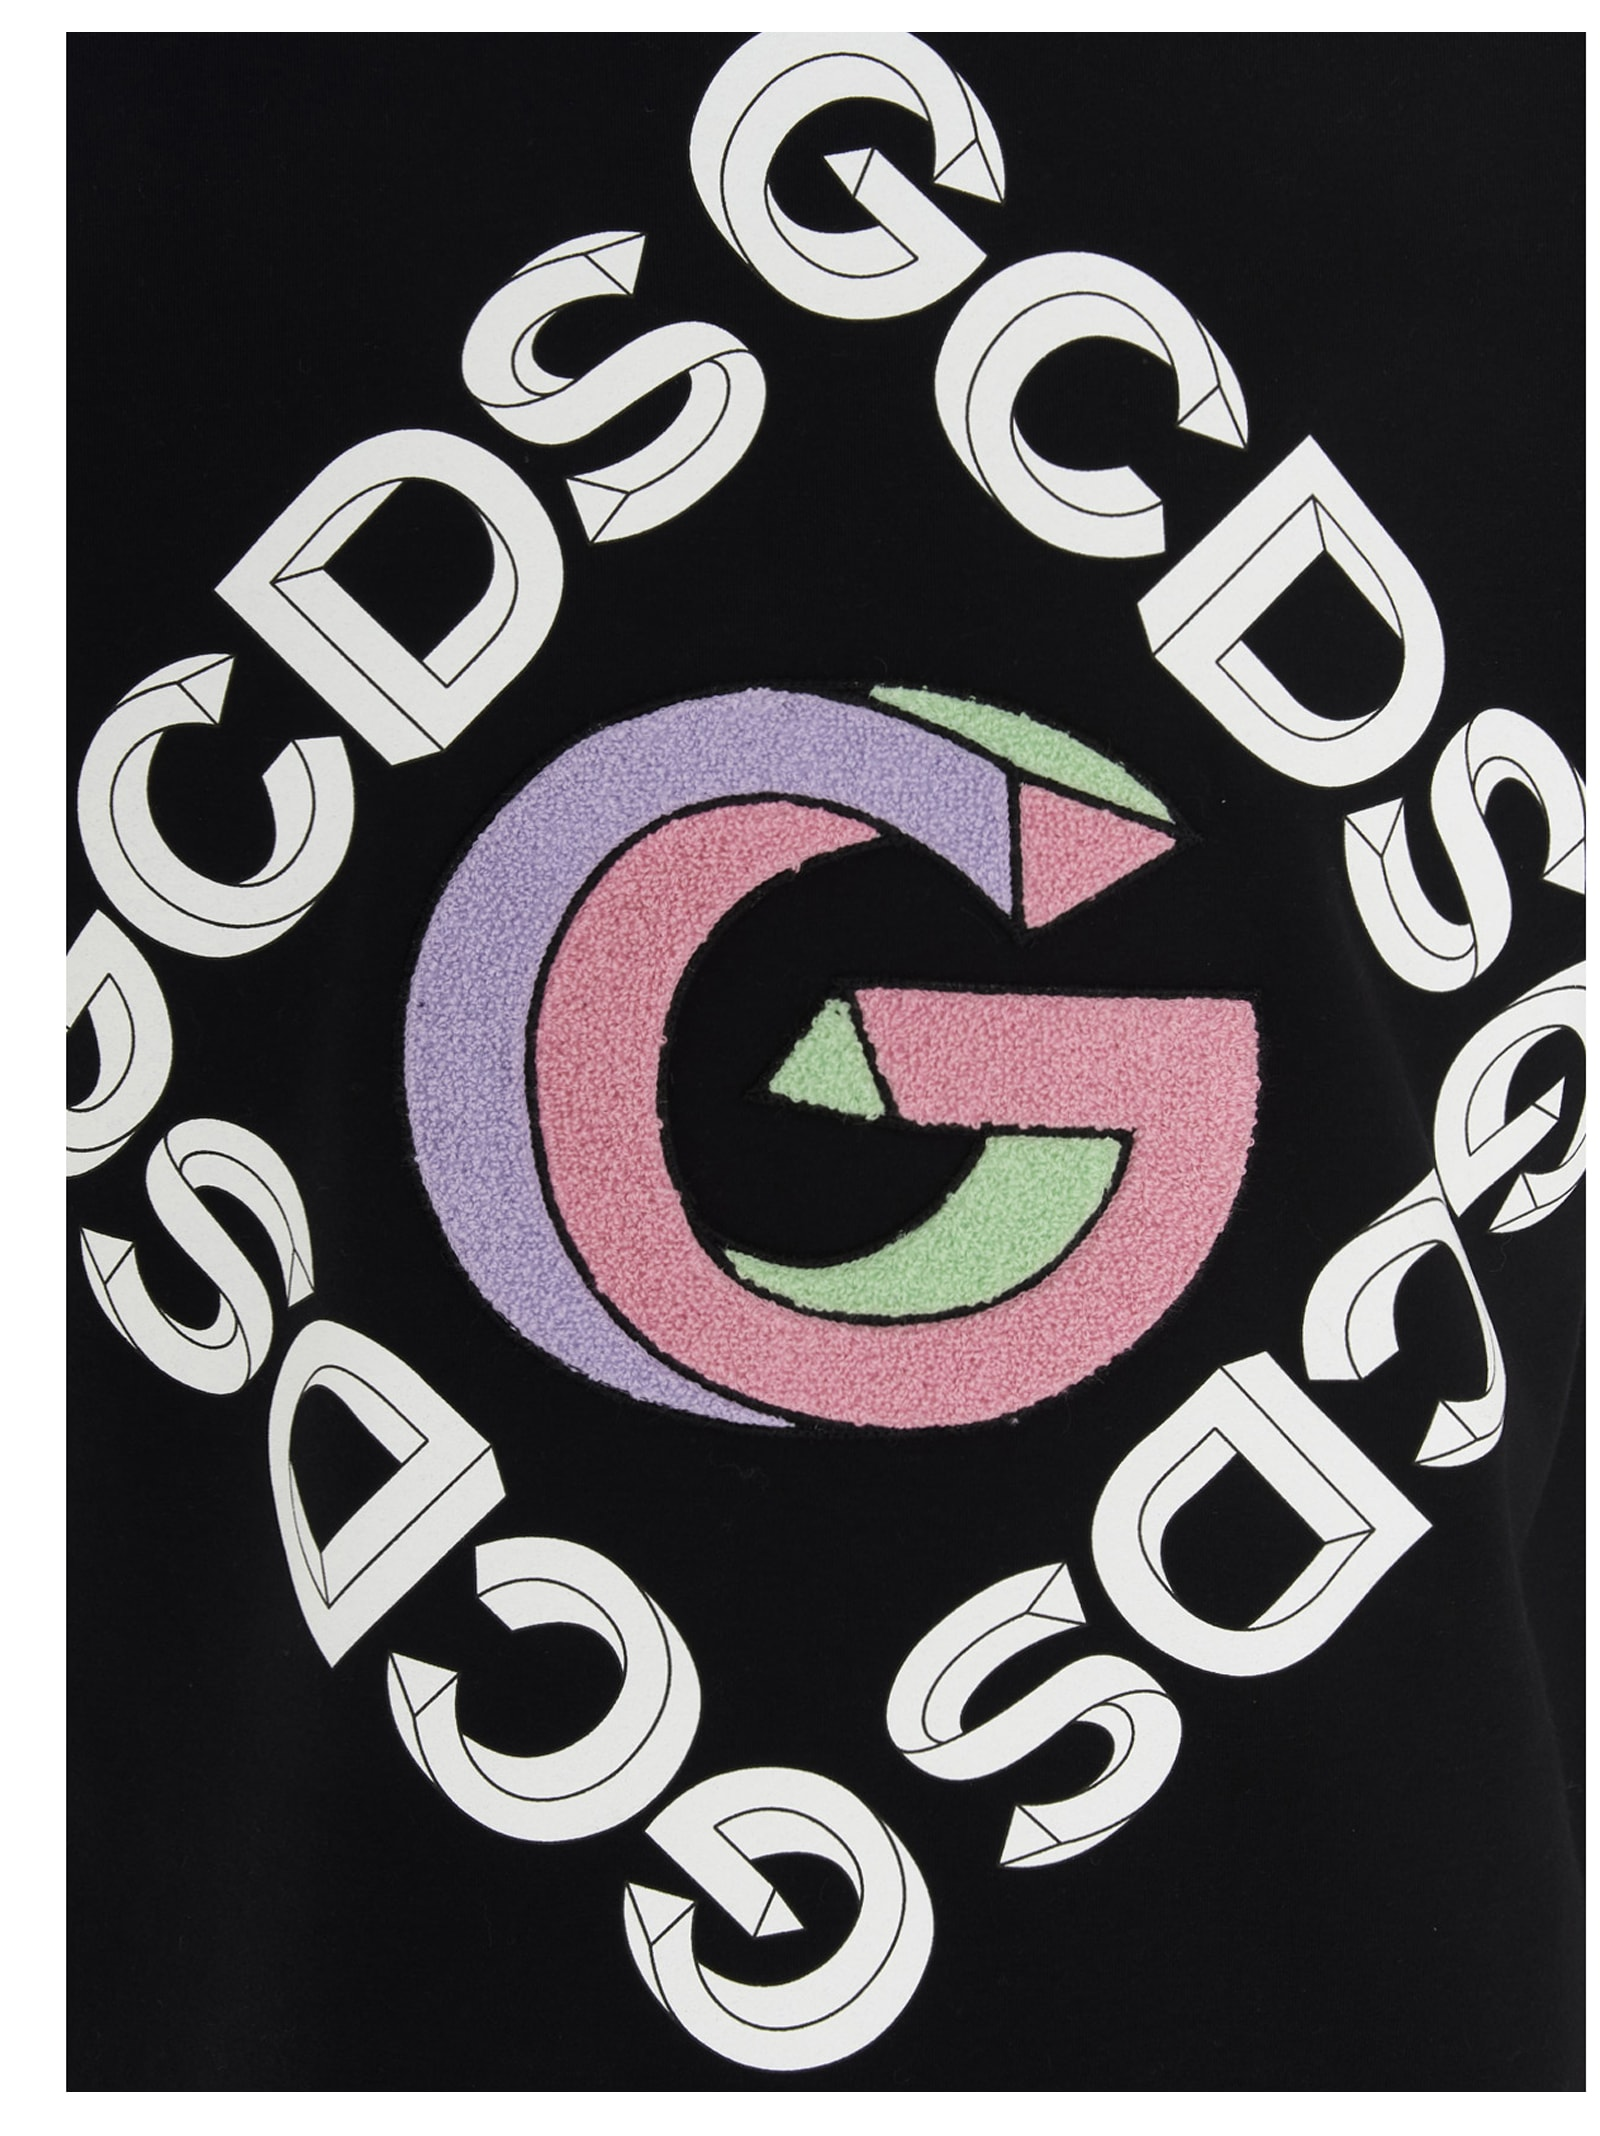 Best Price Gcds T-shirt - Top Quality